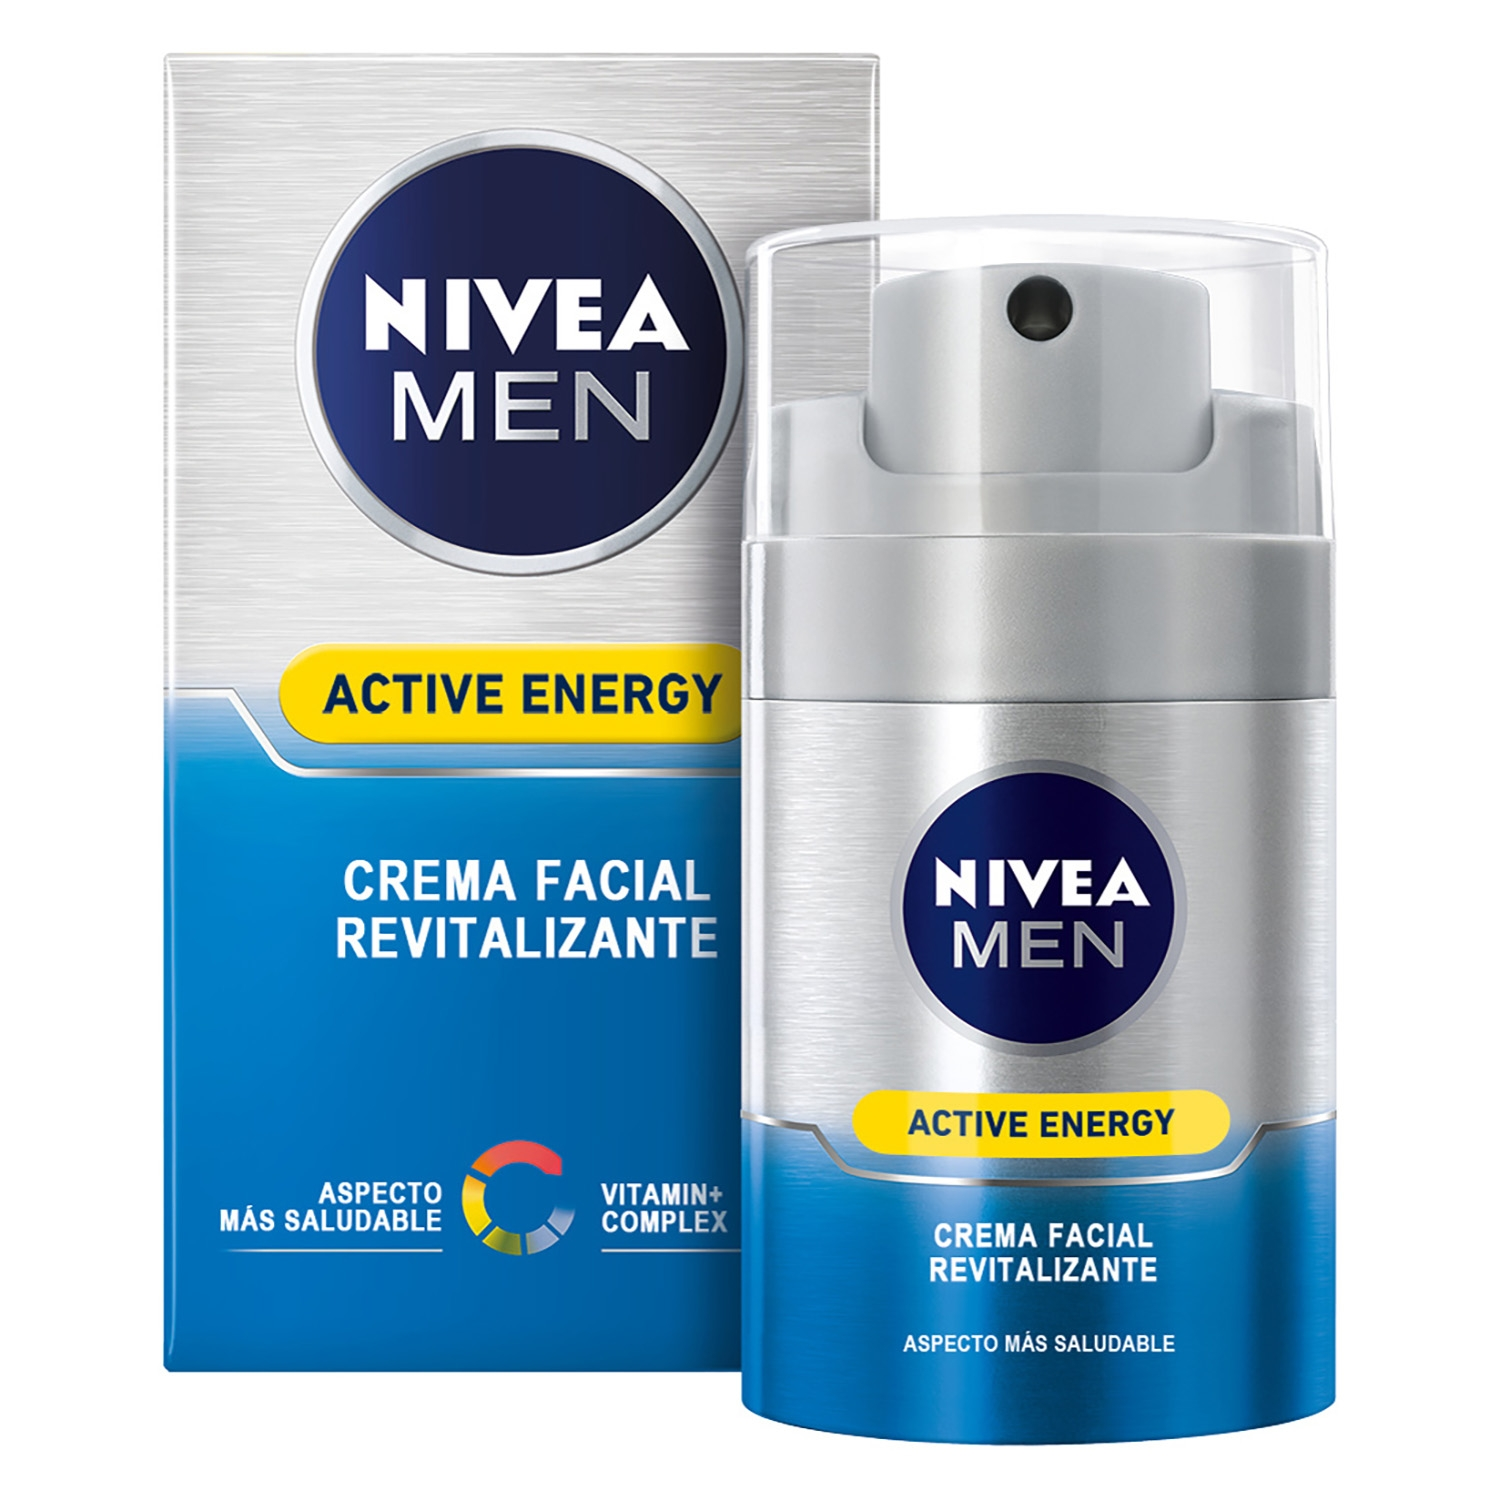 Active Energy Crema Facial Revitalizante - 2